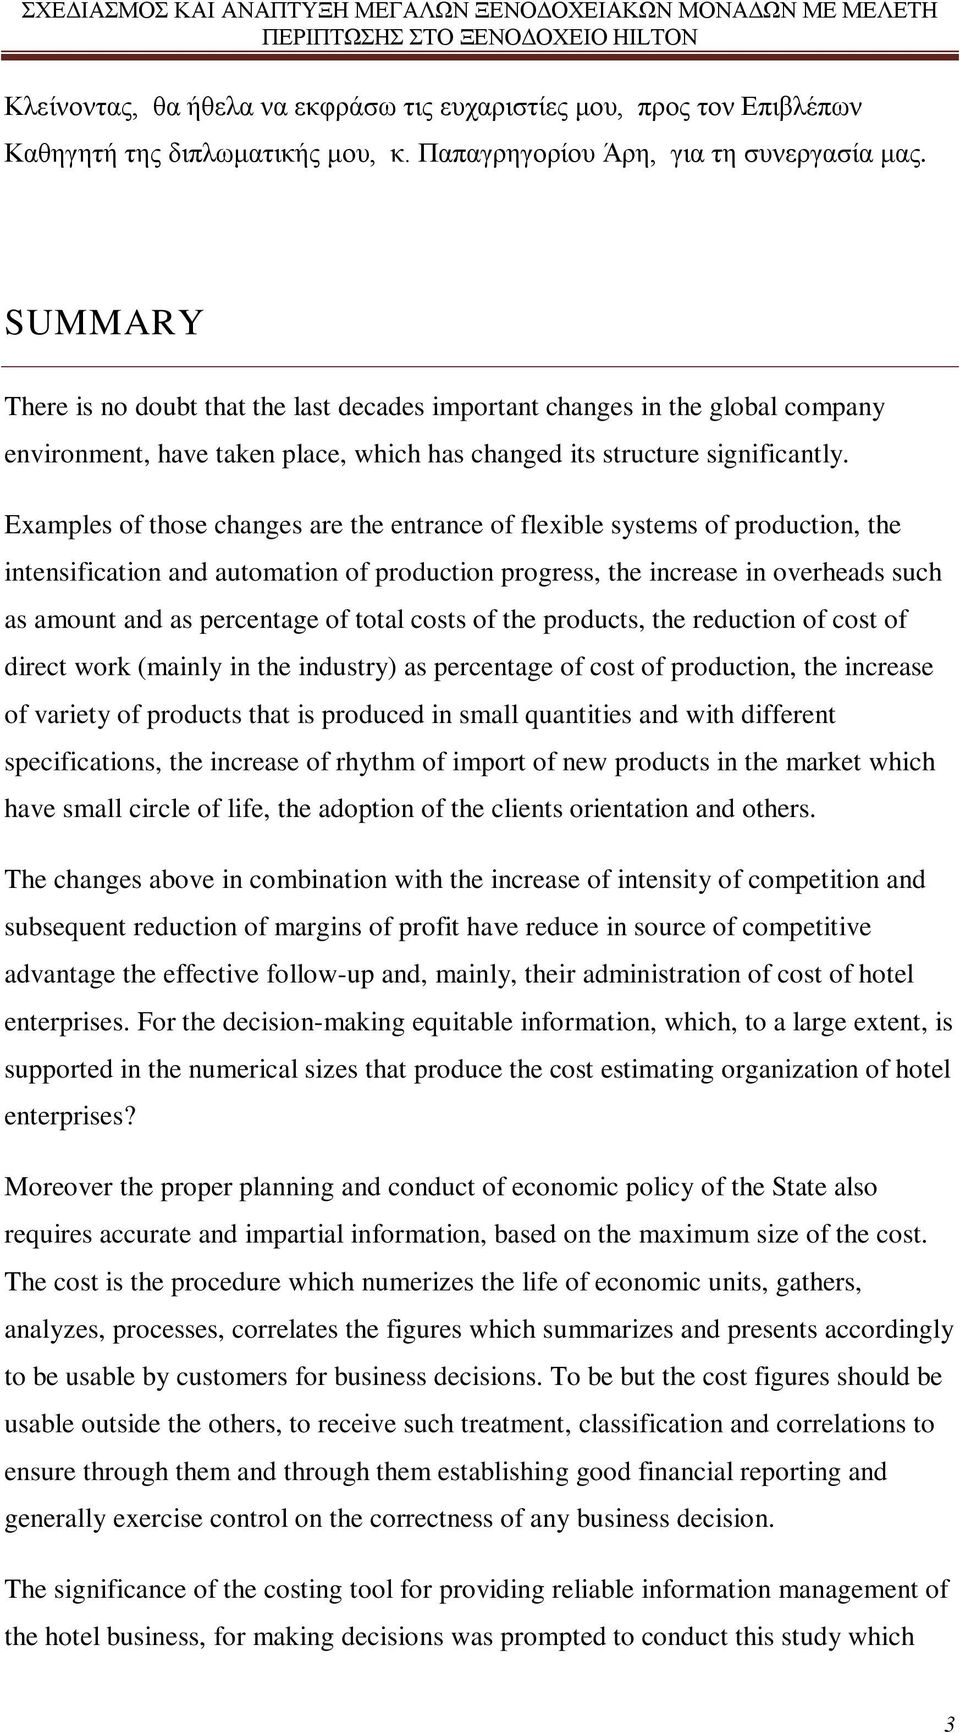 Examples of those changes are the entrance of flexible systems of production, the intensification and automation of production progress, the increase in overheads such as amount and as percentage of